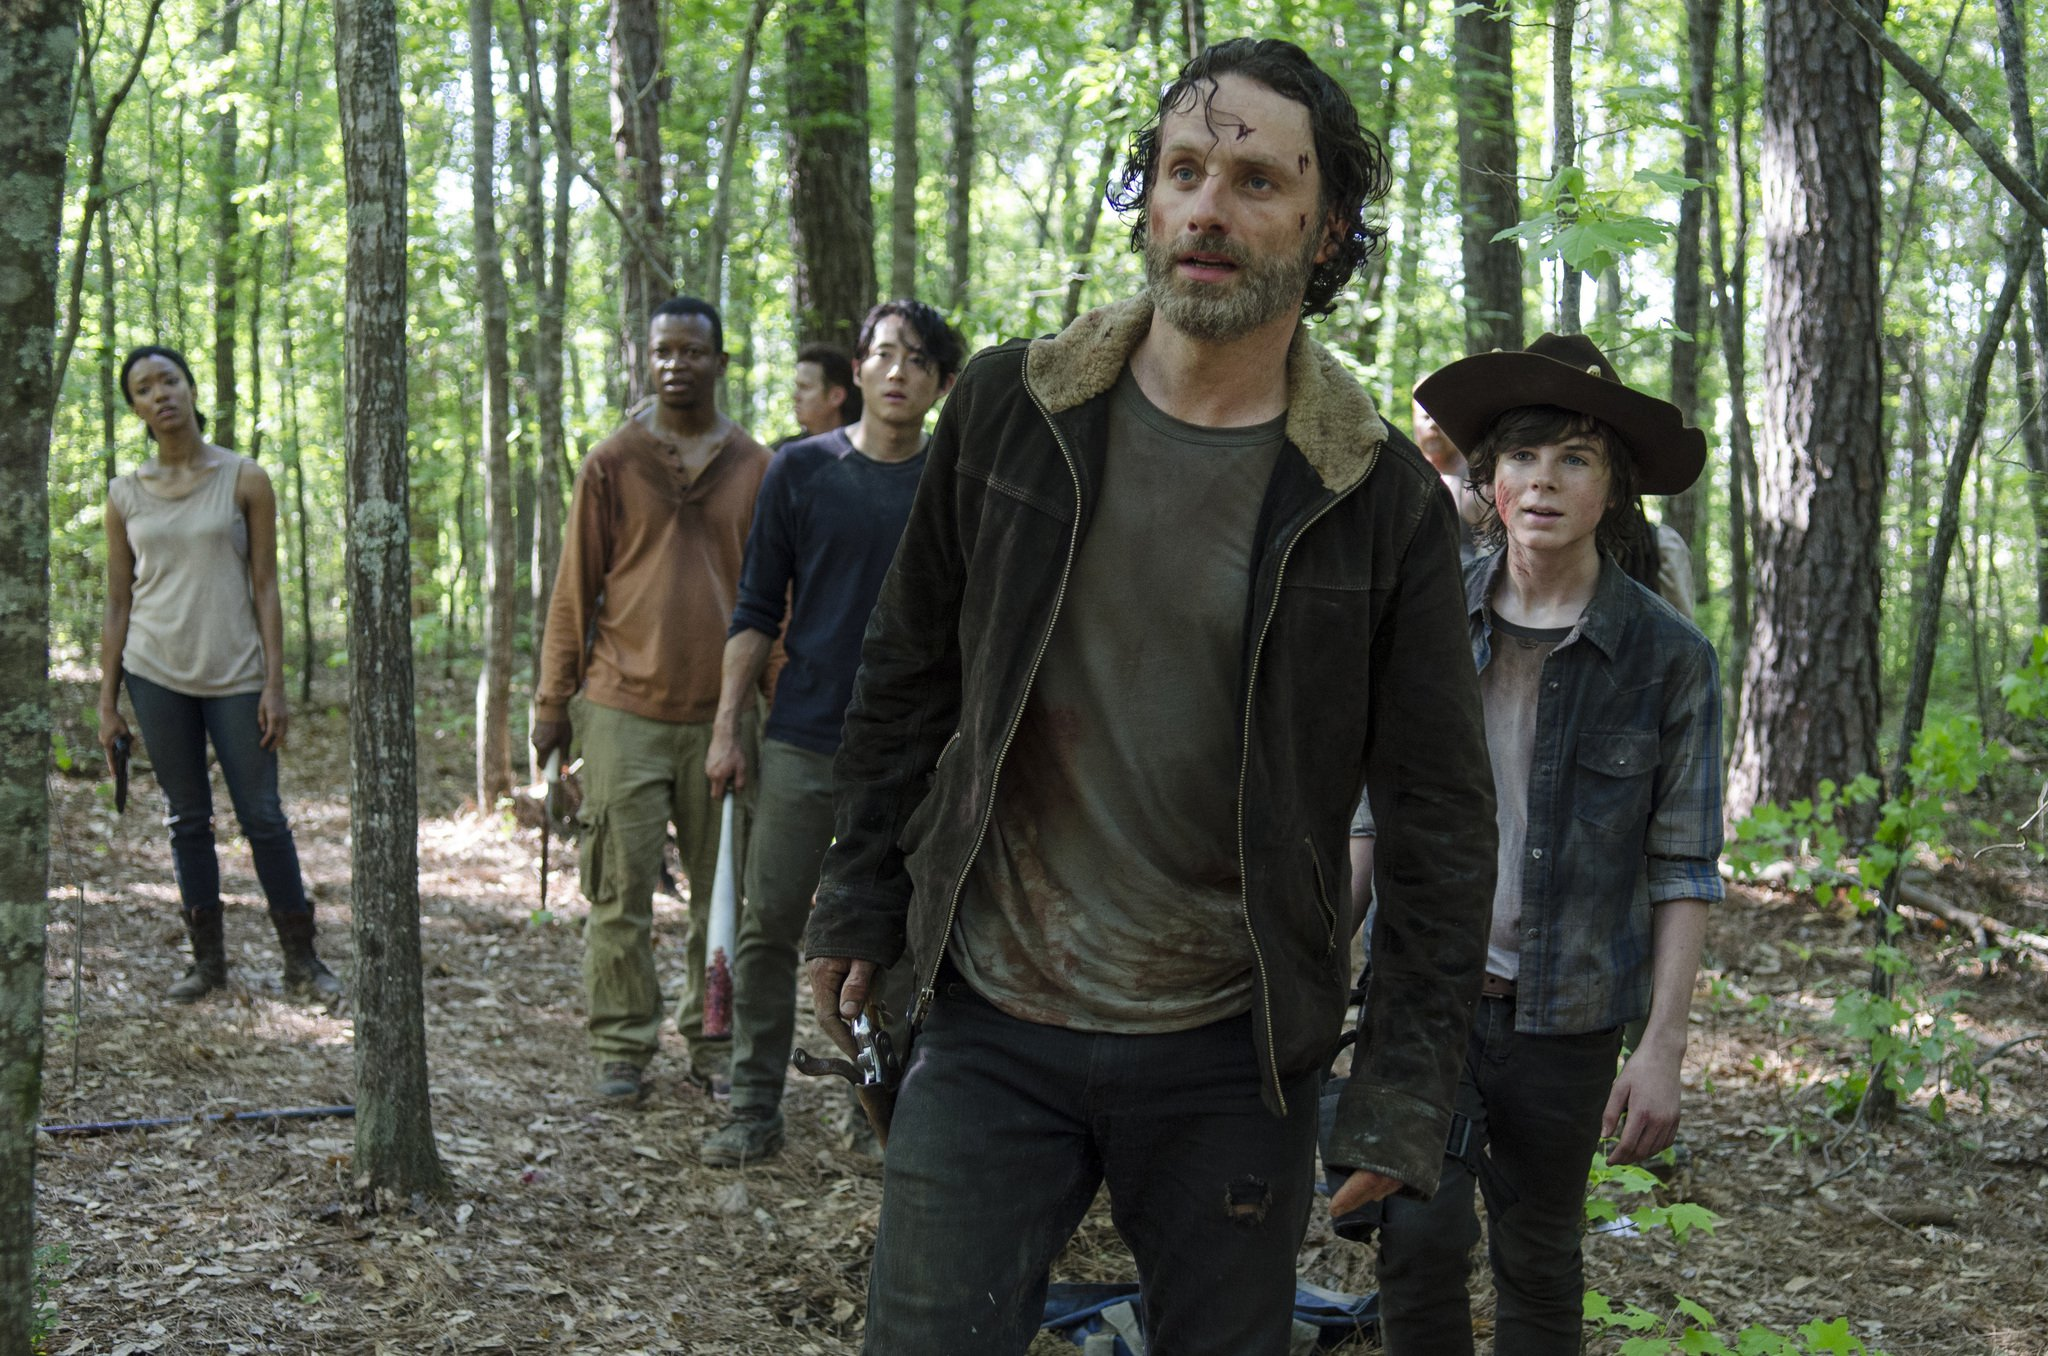 The cast of The Walking Dead